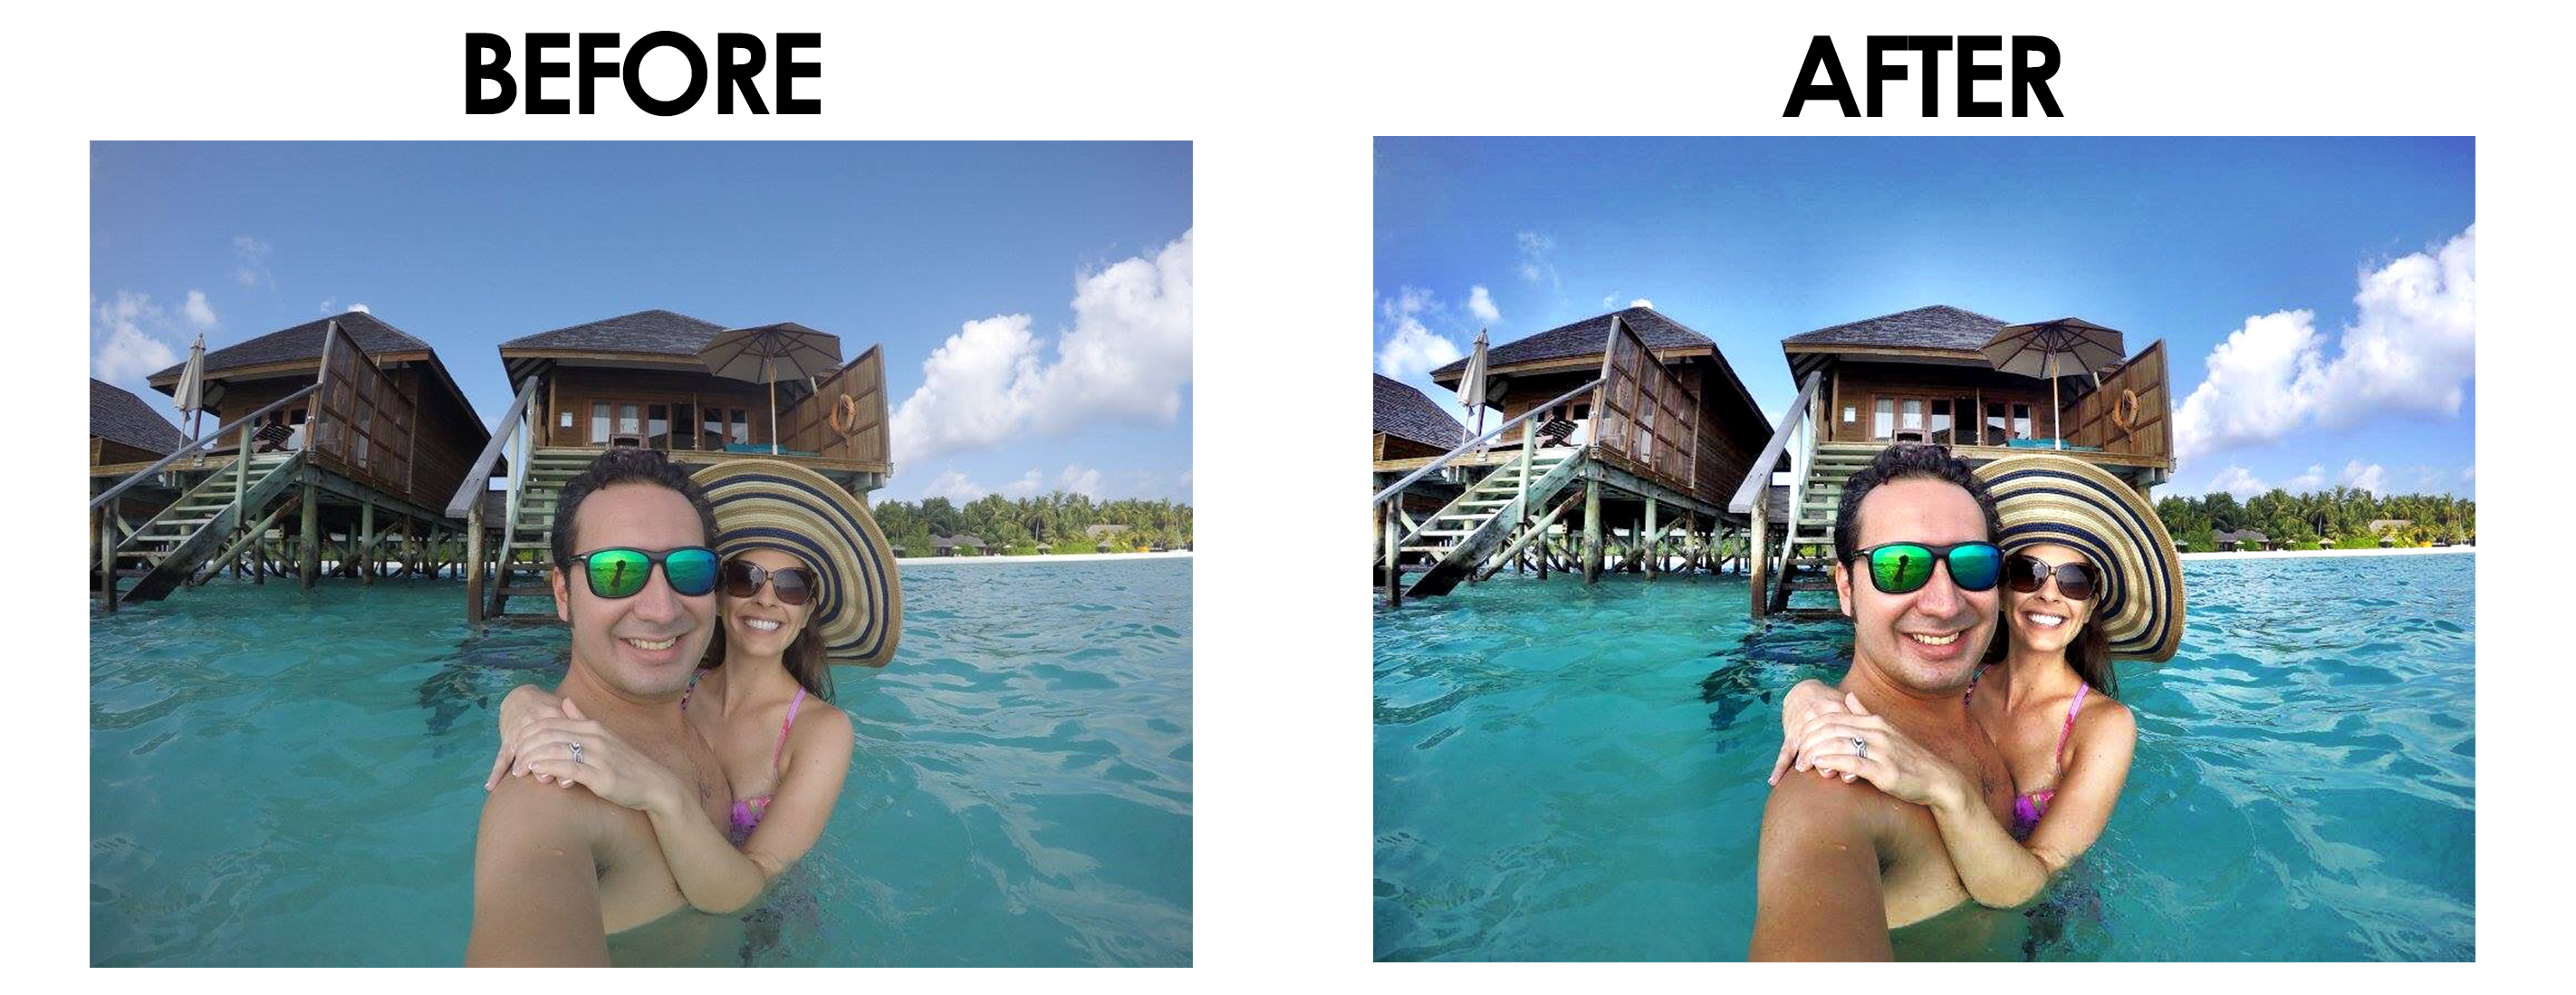 Maldives Before and After - Camera+ Photo App